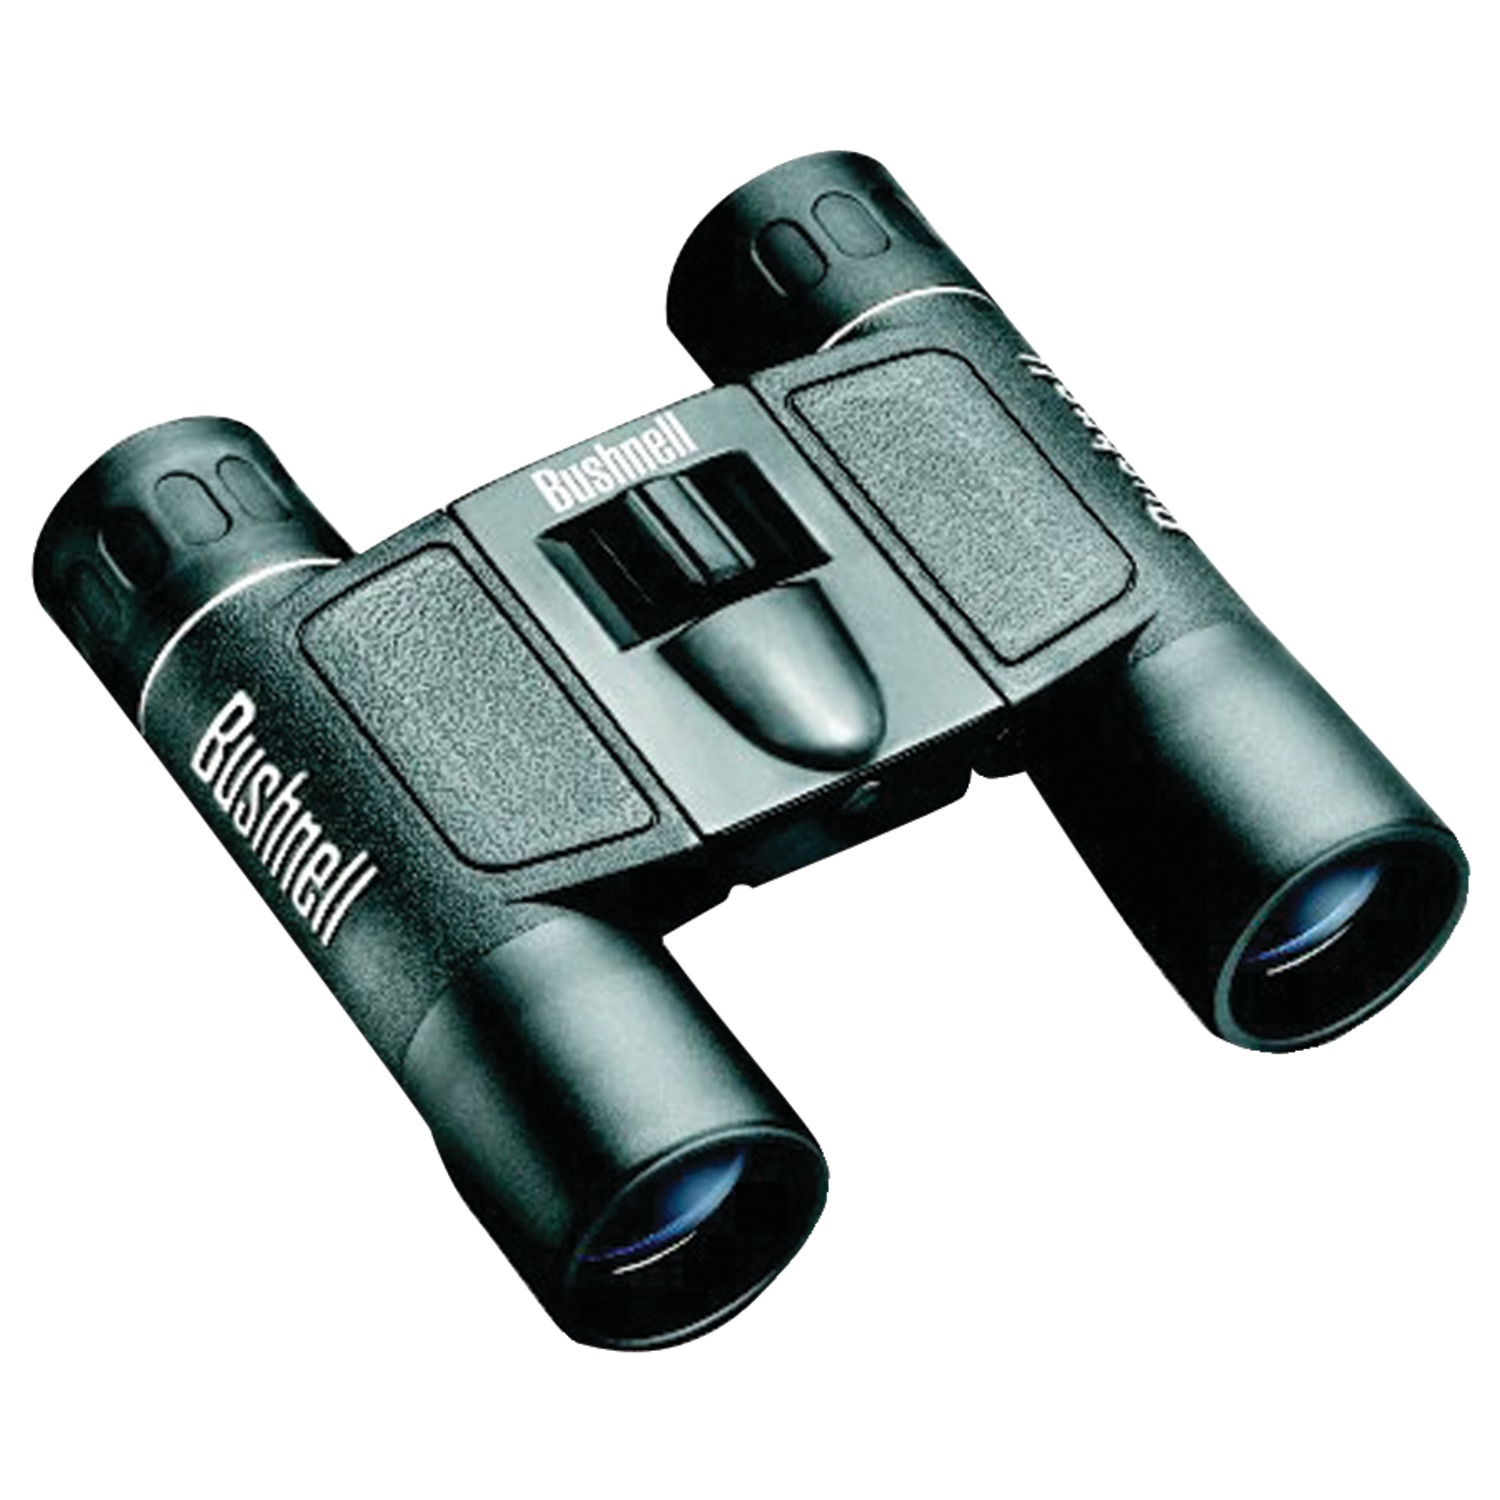 Image for Bushnell PowerView 13-2516 - binoculars 10 x 25 from Circuit City